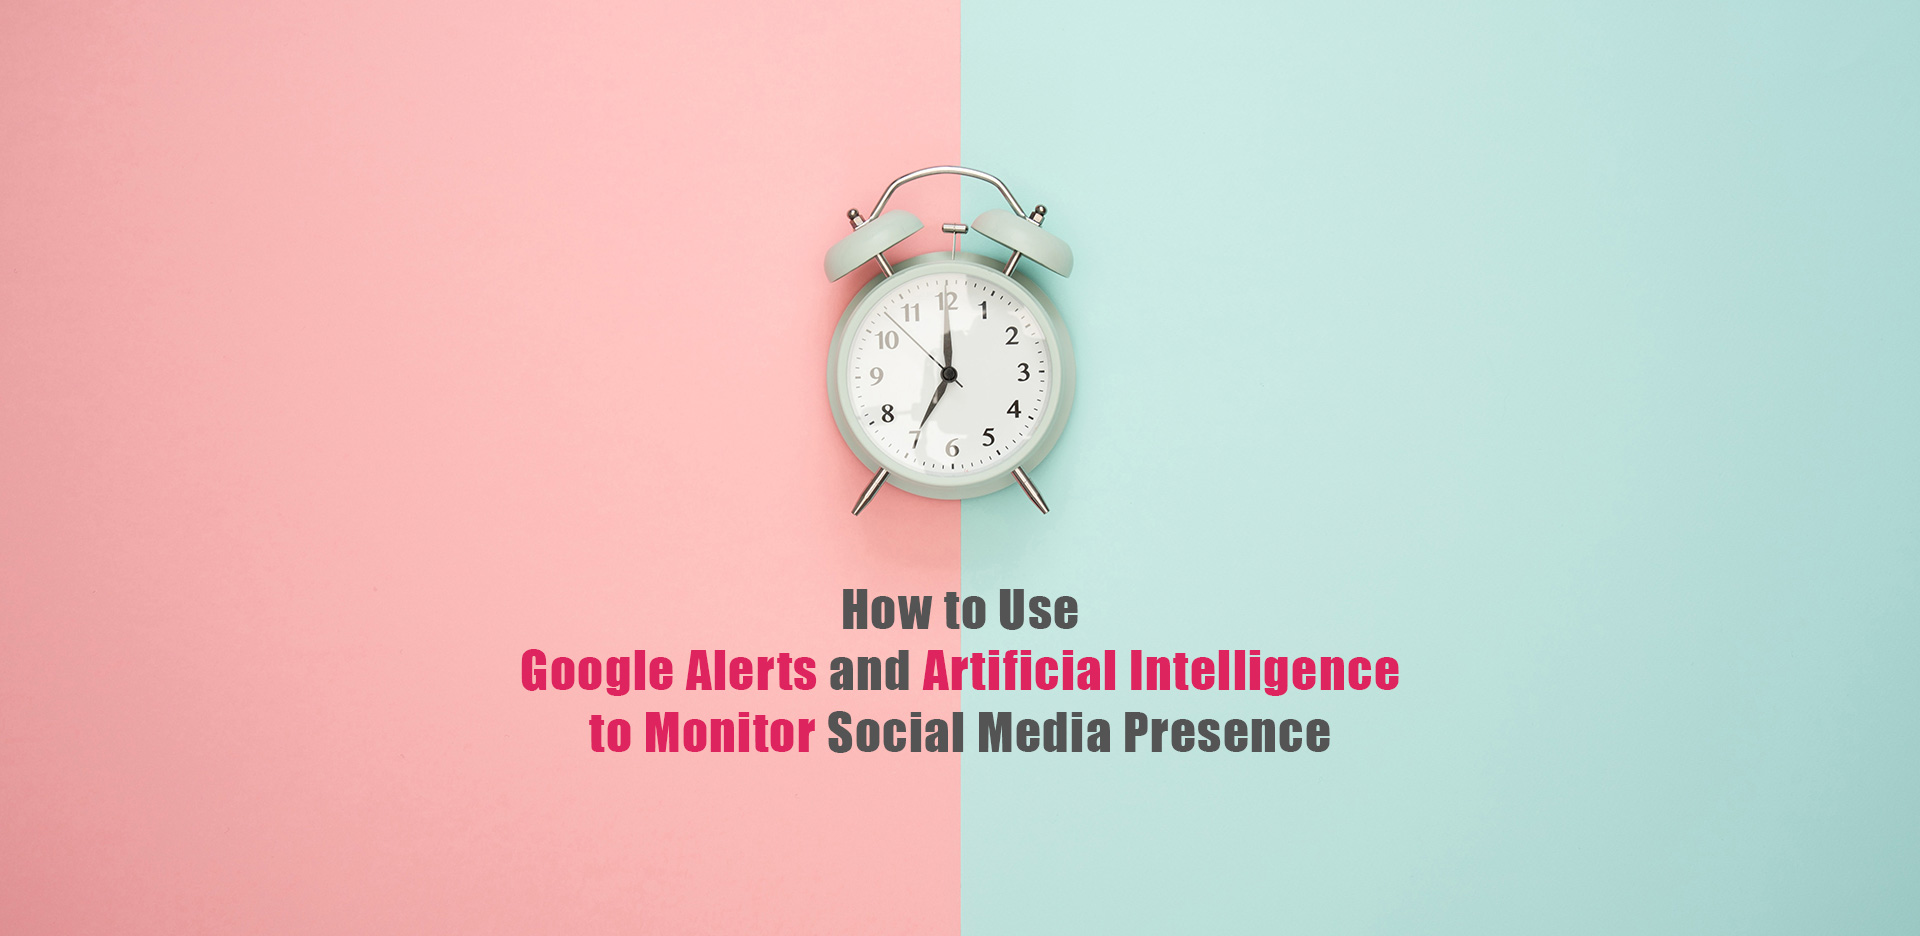 How to Use Google Alerts and Artificial Intelligence to Monitor Social Media Presence